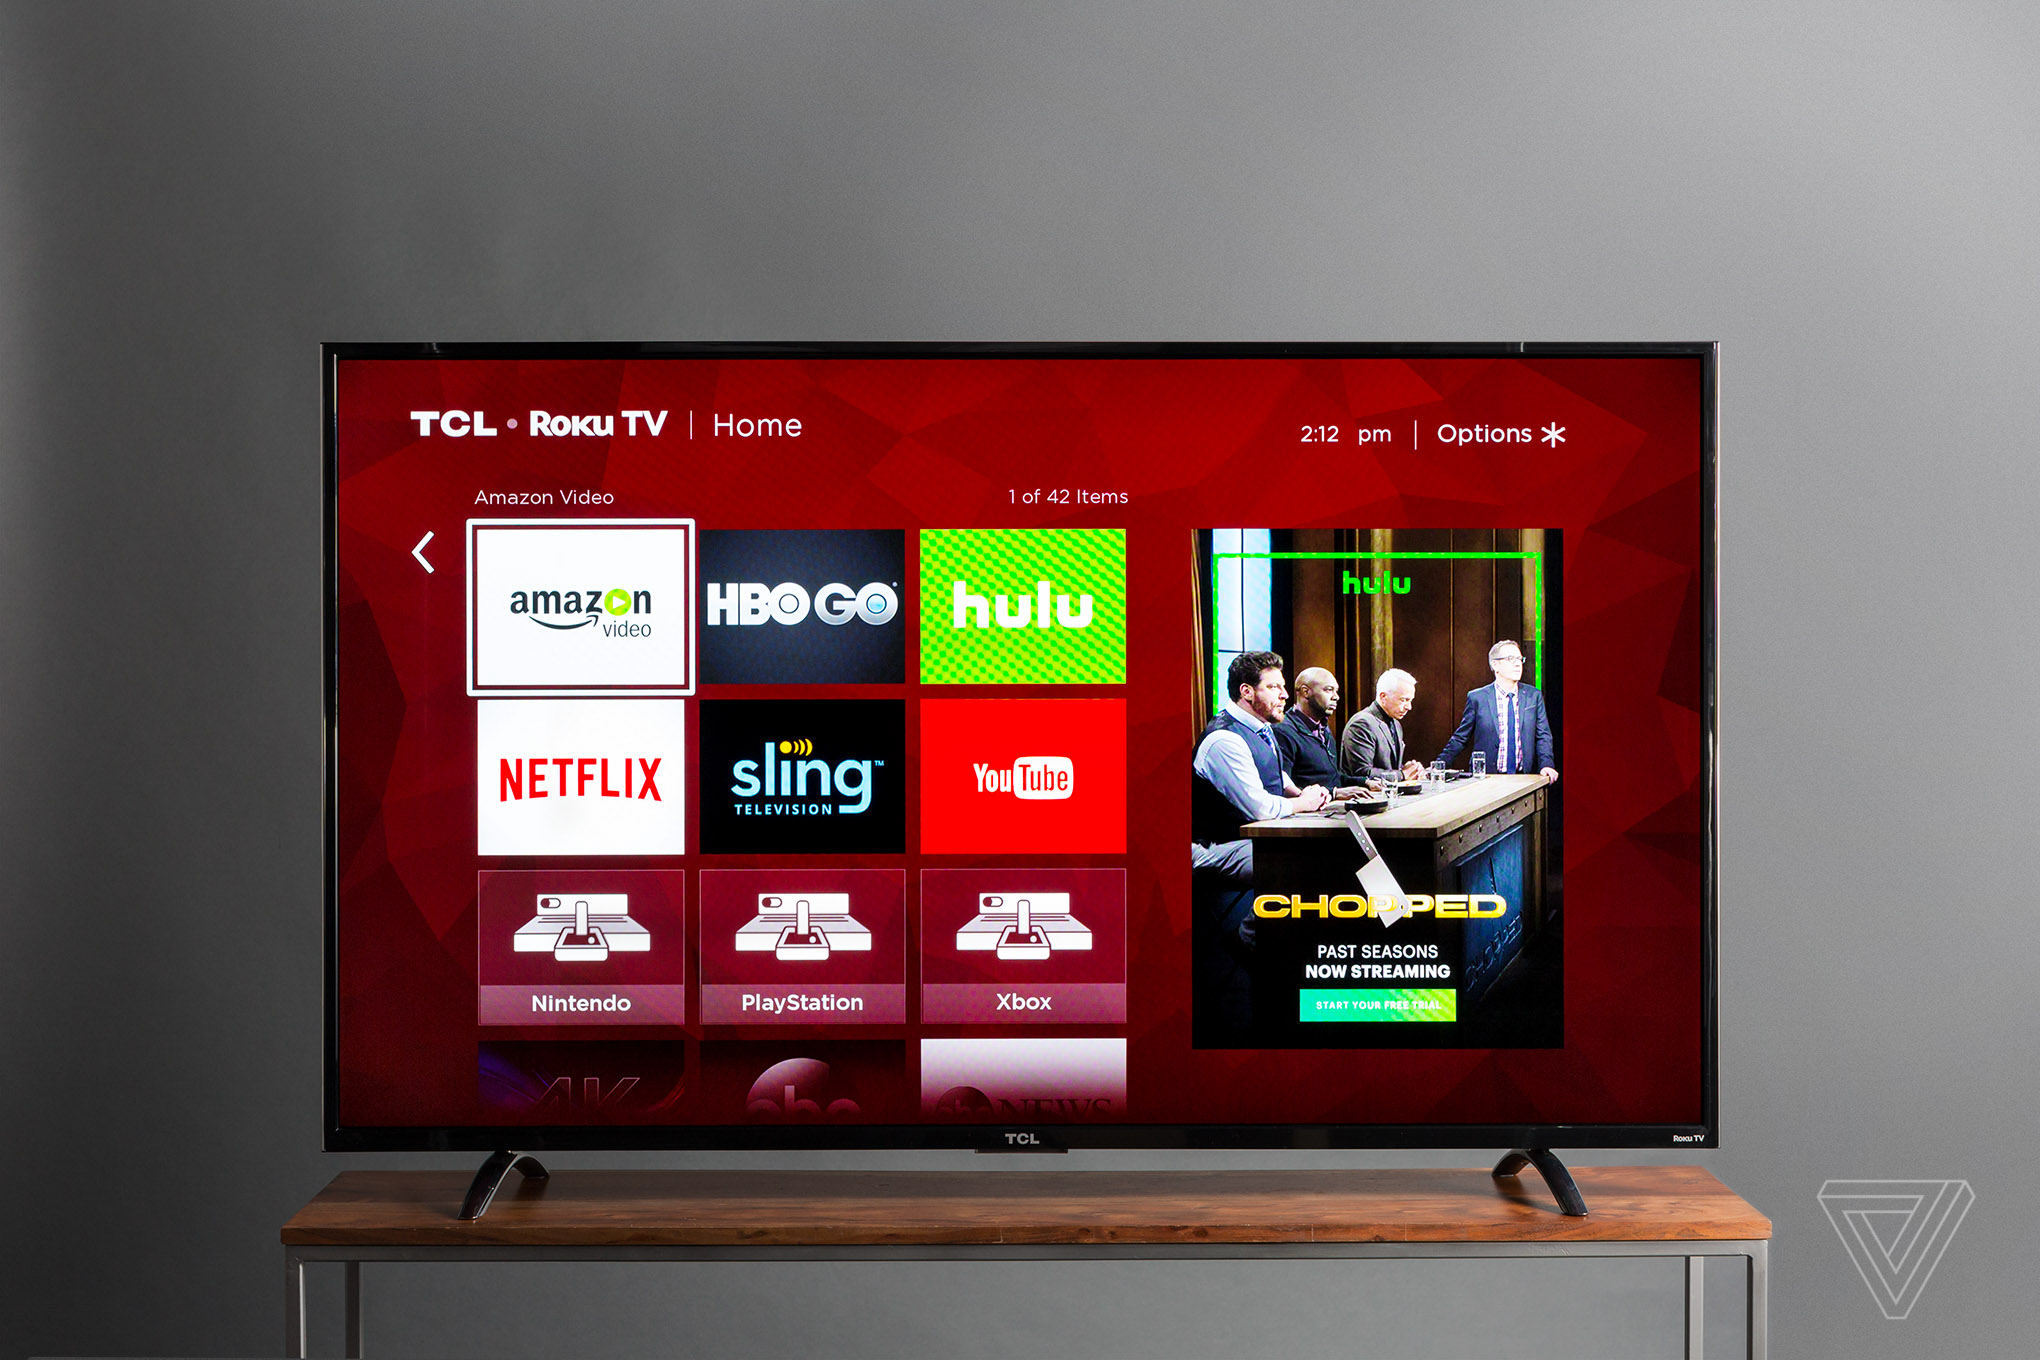 TCL P-Series Roku TV review: the best budget 4K TV you can